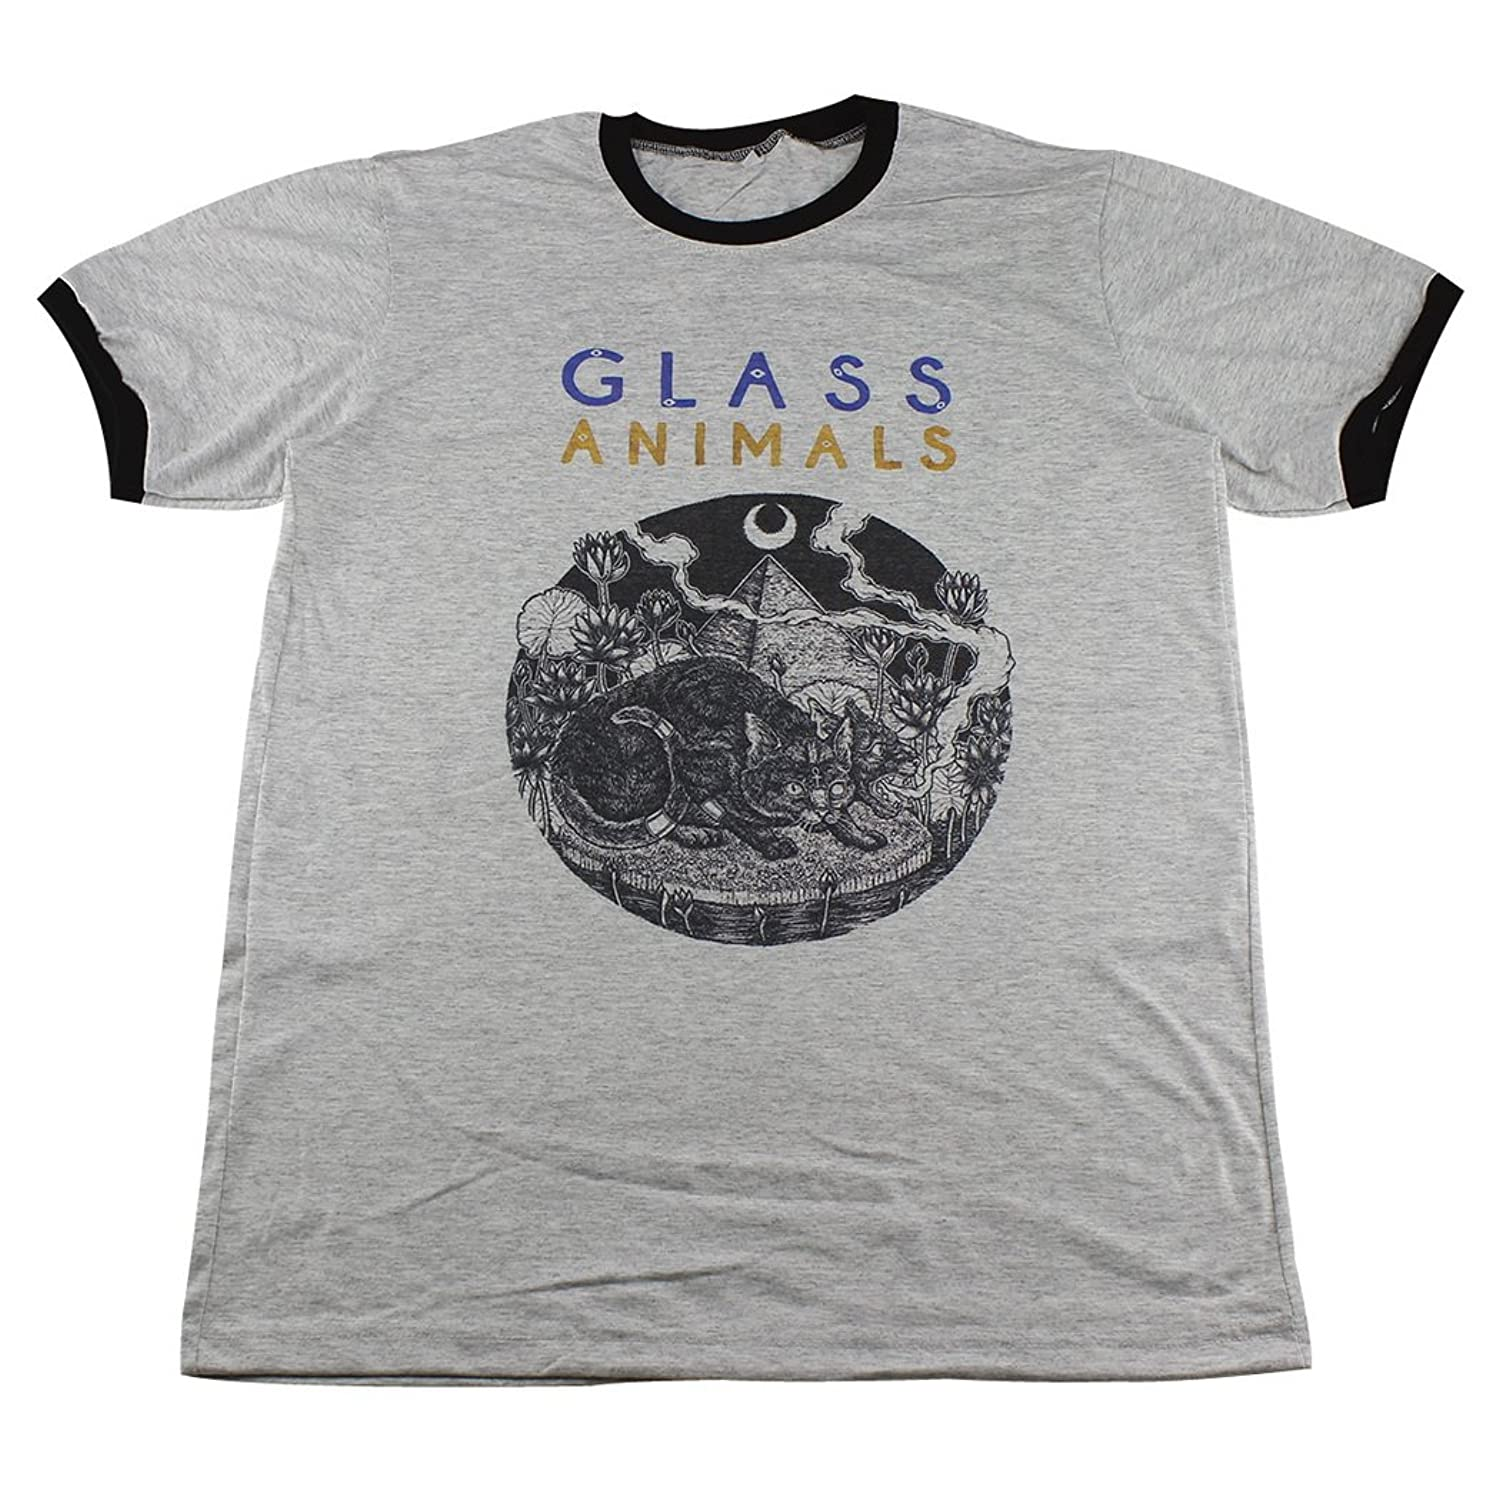 Glass Animals alternative indie rock band T-Shirt Gray / C045.4 size L